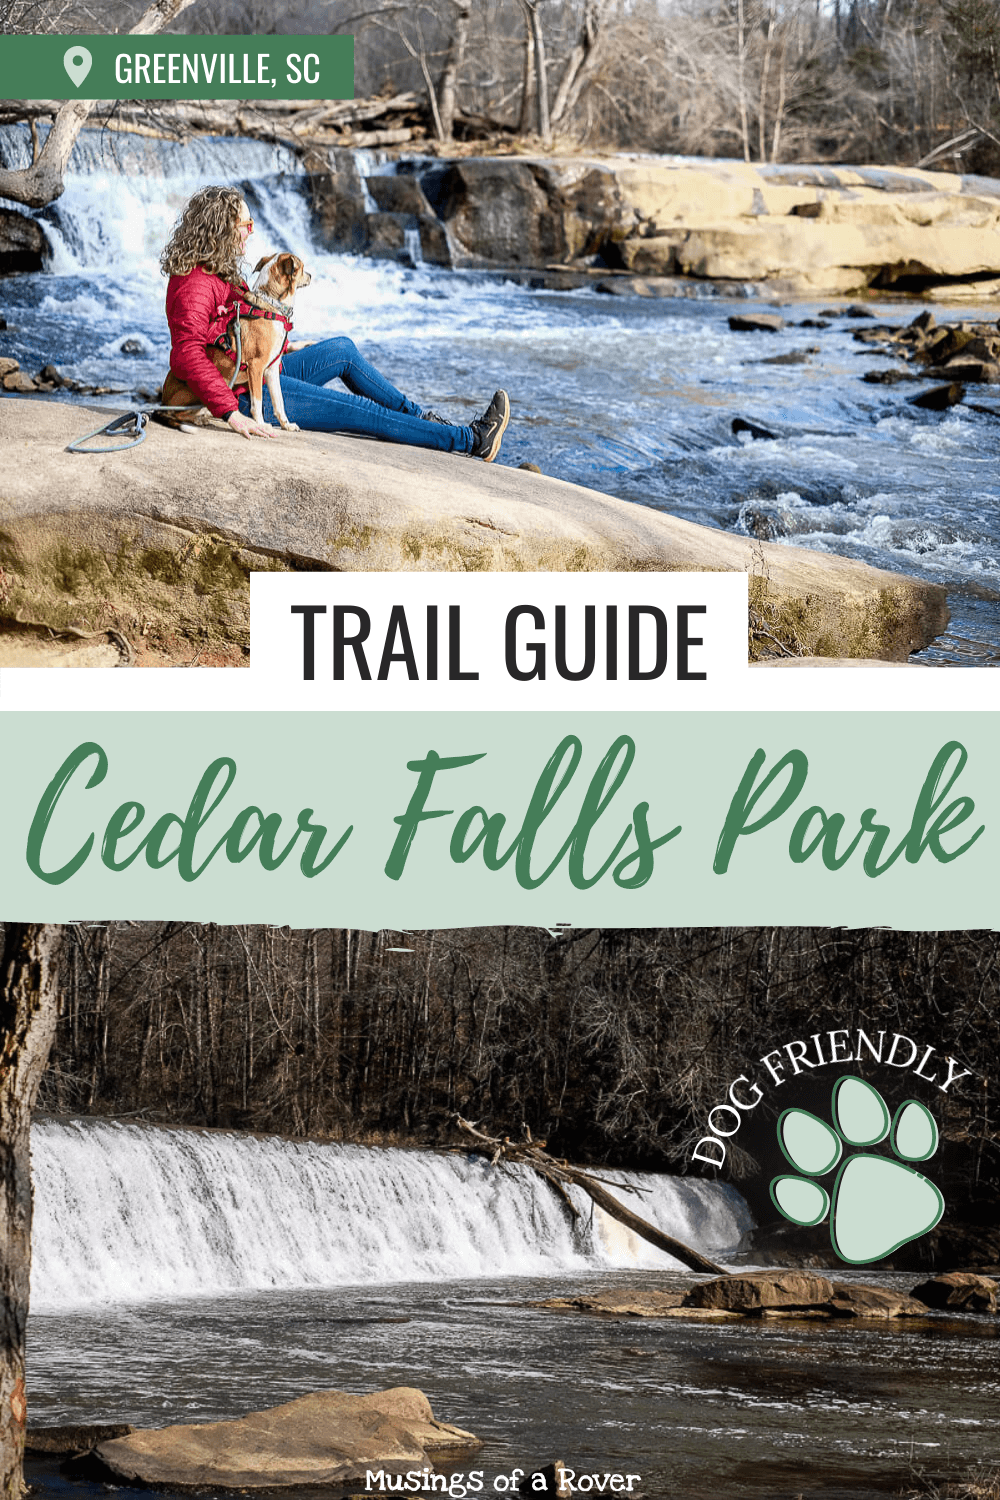 Looking for an easy hike near Greenville, SC? Cedar Falls Park is a small county park in Fountain Inn that's an easy 30 minute drive from downtown. With 4 trails, you can easily spend an hour walking through the woods here. While you're there, be sure to stop by and see the rapids, dams, and waterfalls in he park.